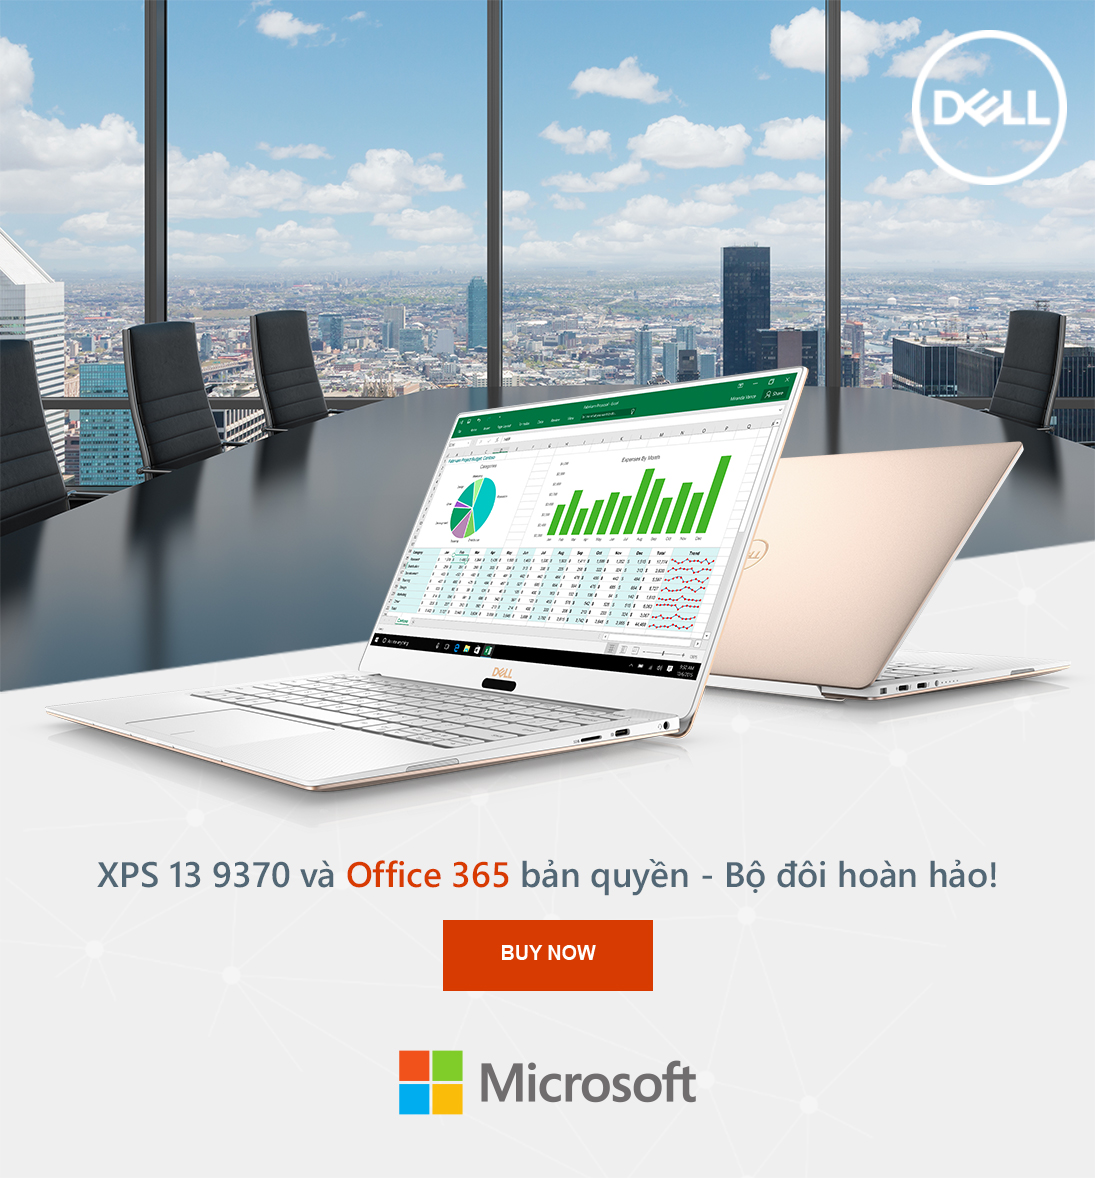 XPS 13 9370 va OFFICE 365 Ban Quyen